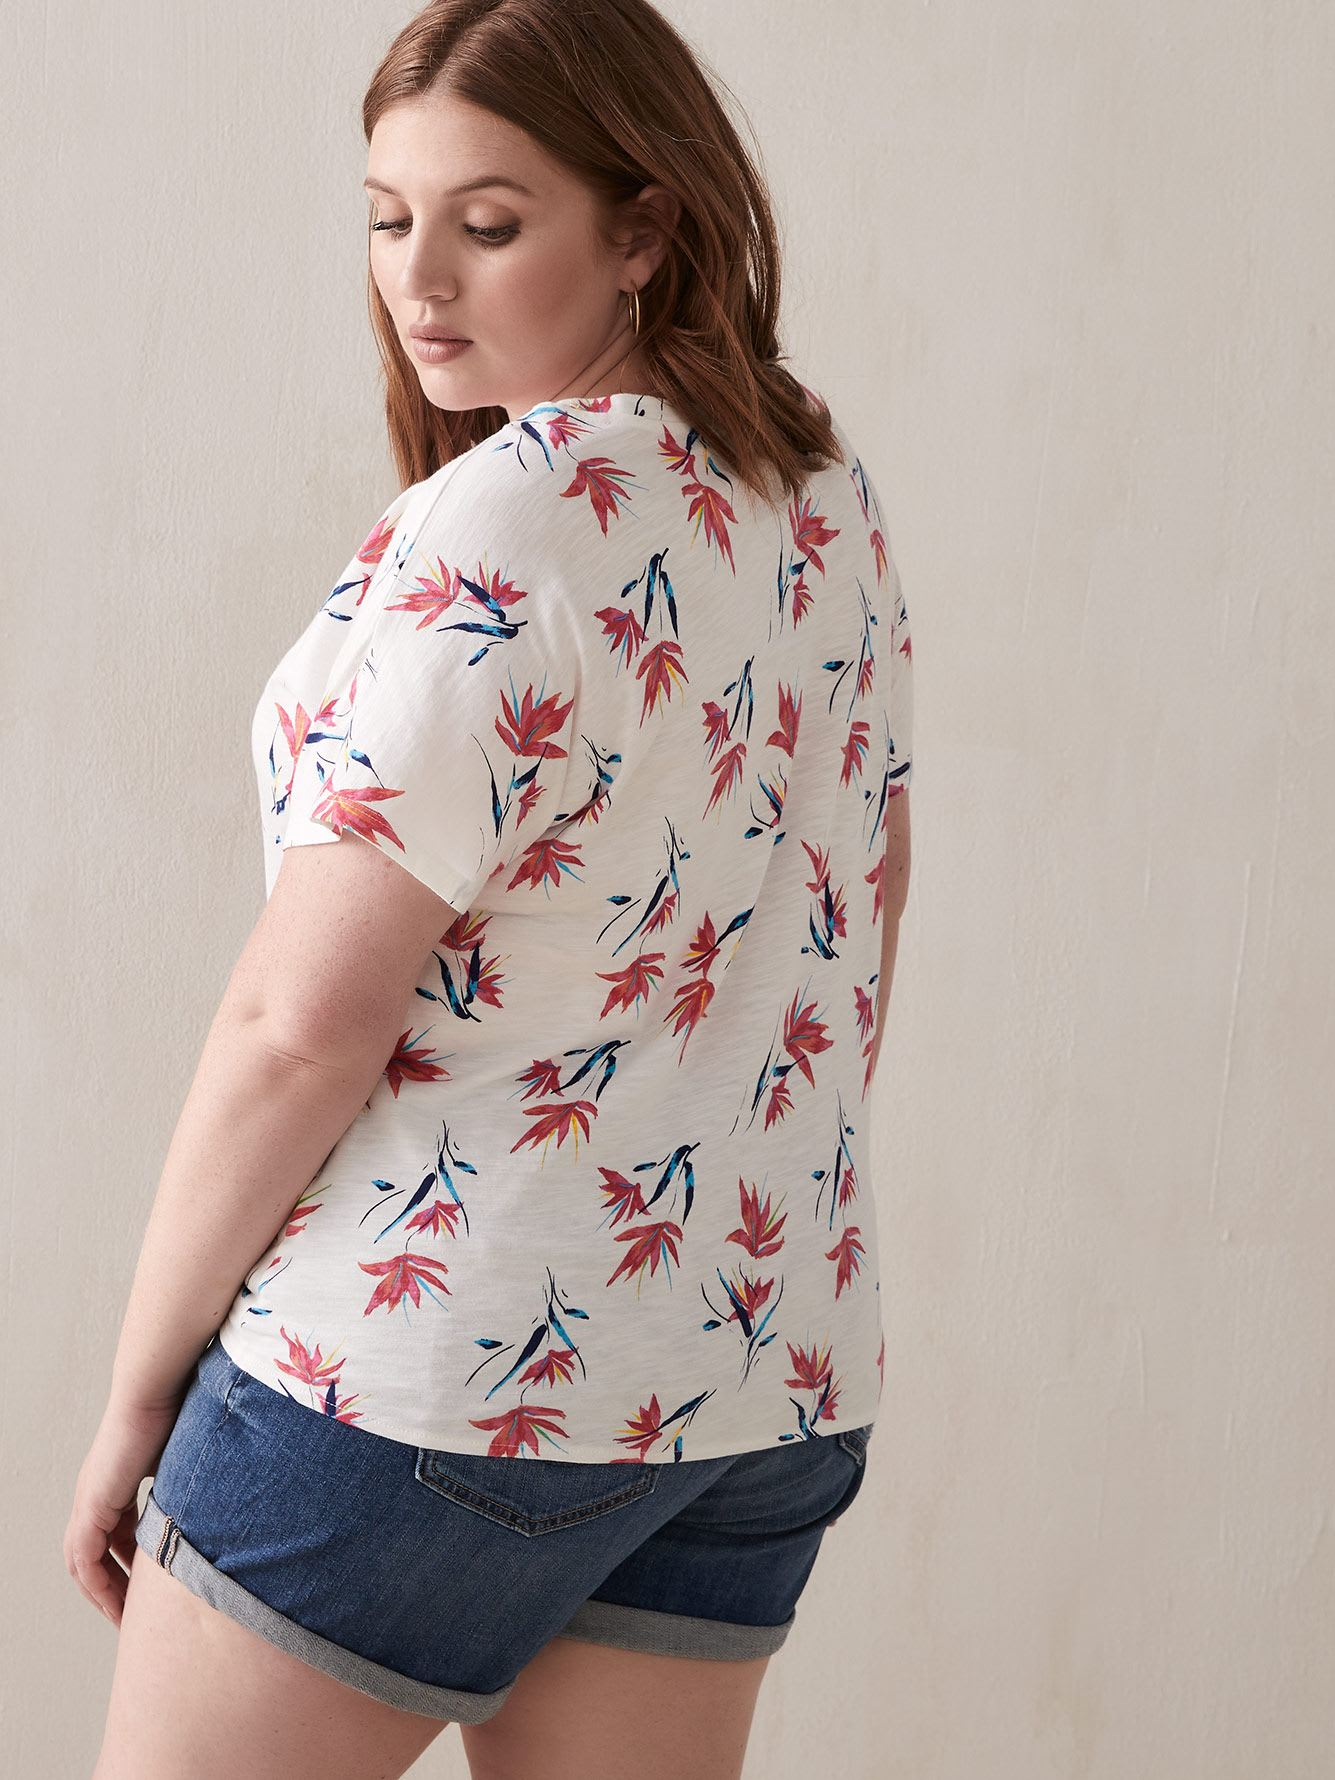 Dropped Shoulder Floral Top Tied in Front